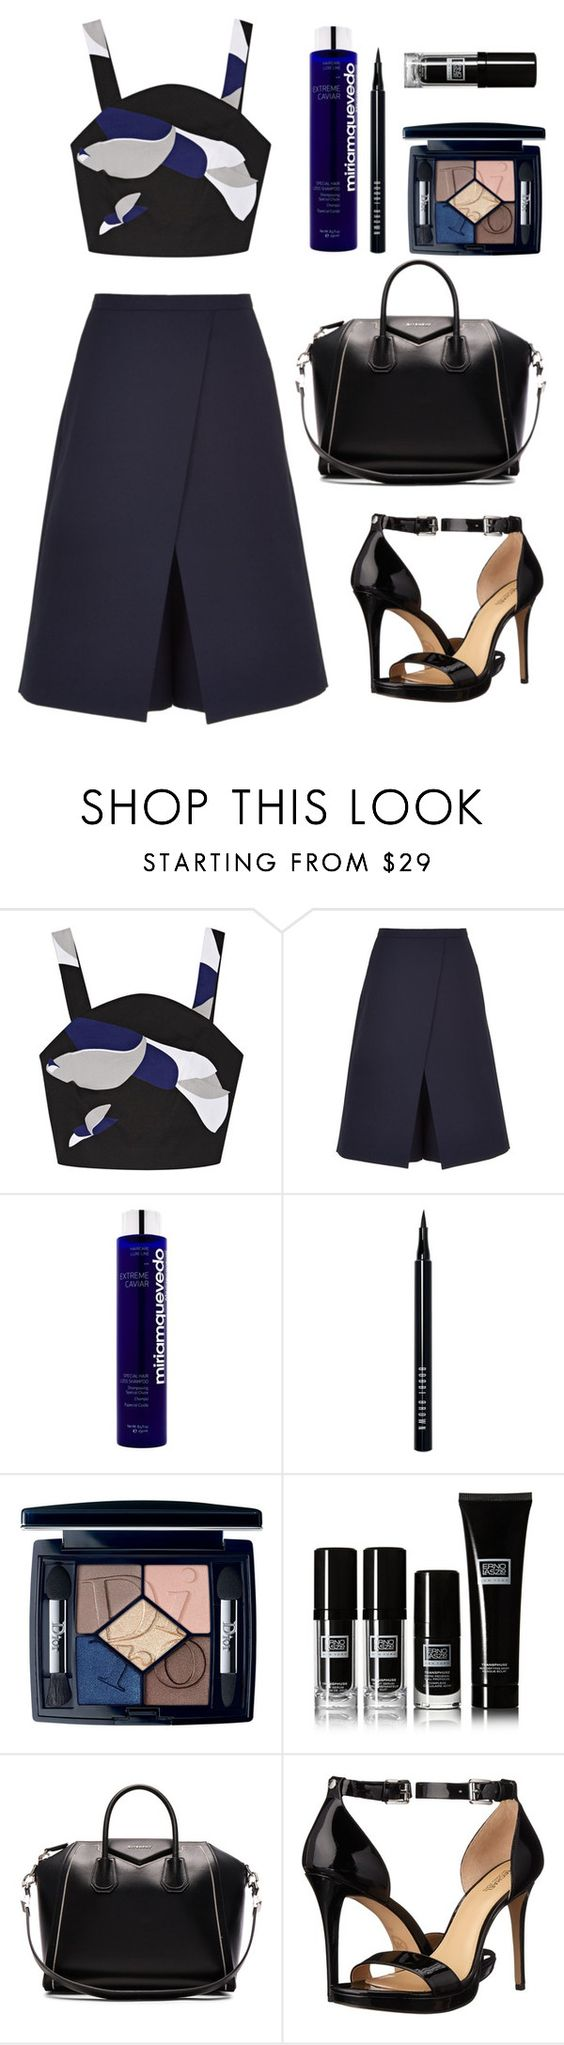 """""""Day 322"""" by msmaharaja ❤ liked on Polyvore featuring TIBI, Miriam Quevedo, Bobbi Brown Cosmetics, Christian Dior, Givenchy and MICHAEL Michael Kors"""